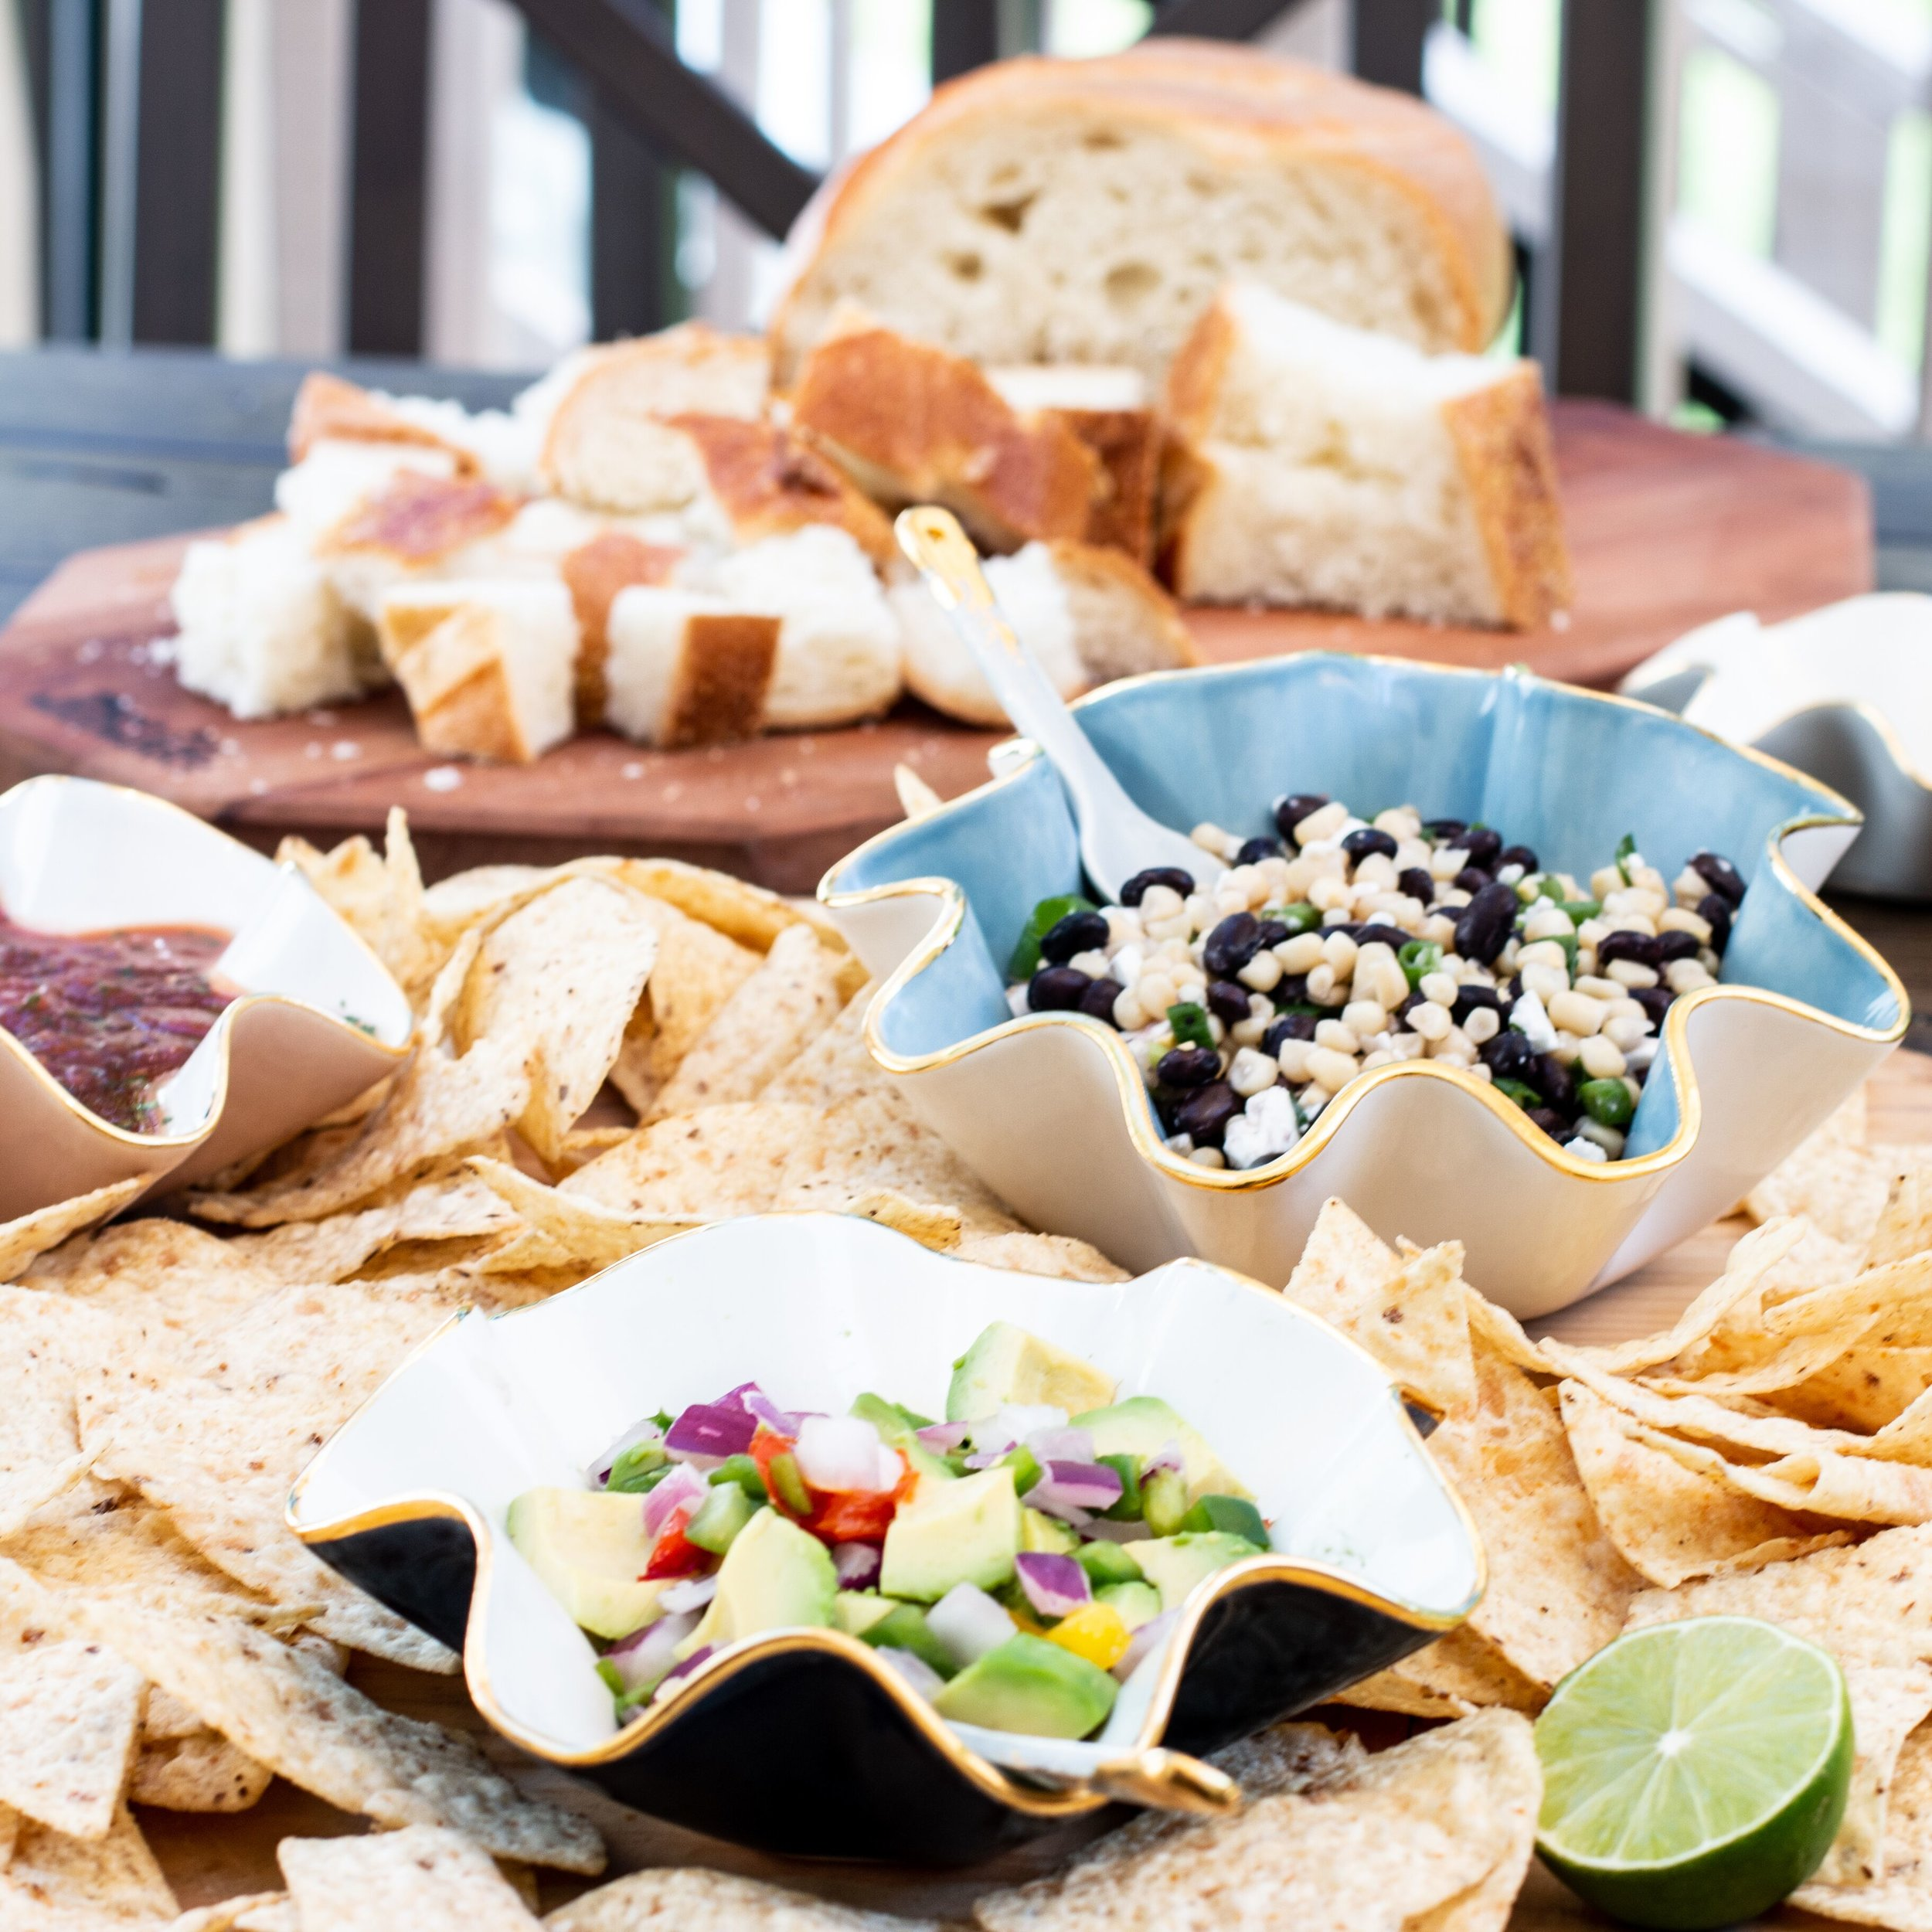 Mix wavy bowls in assorted sizes for dips and spreads - shop here.